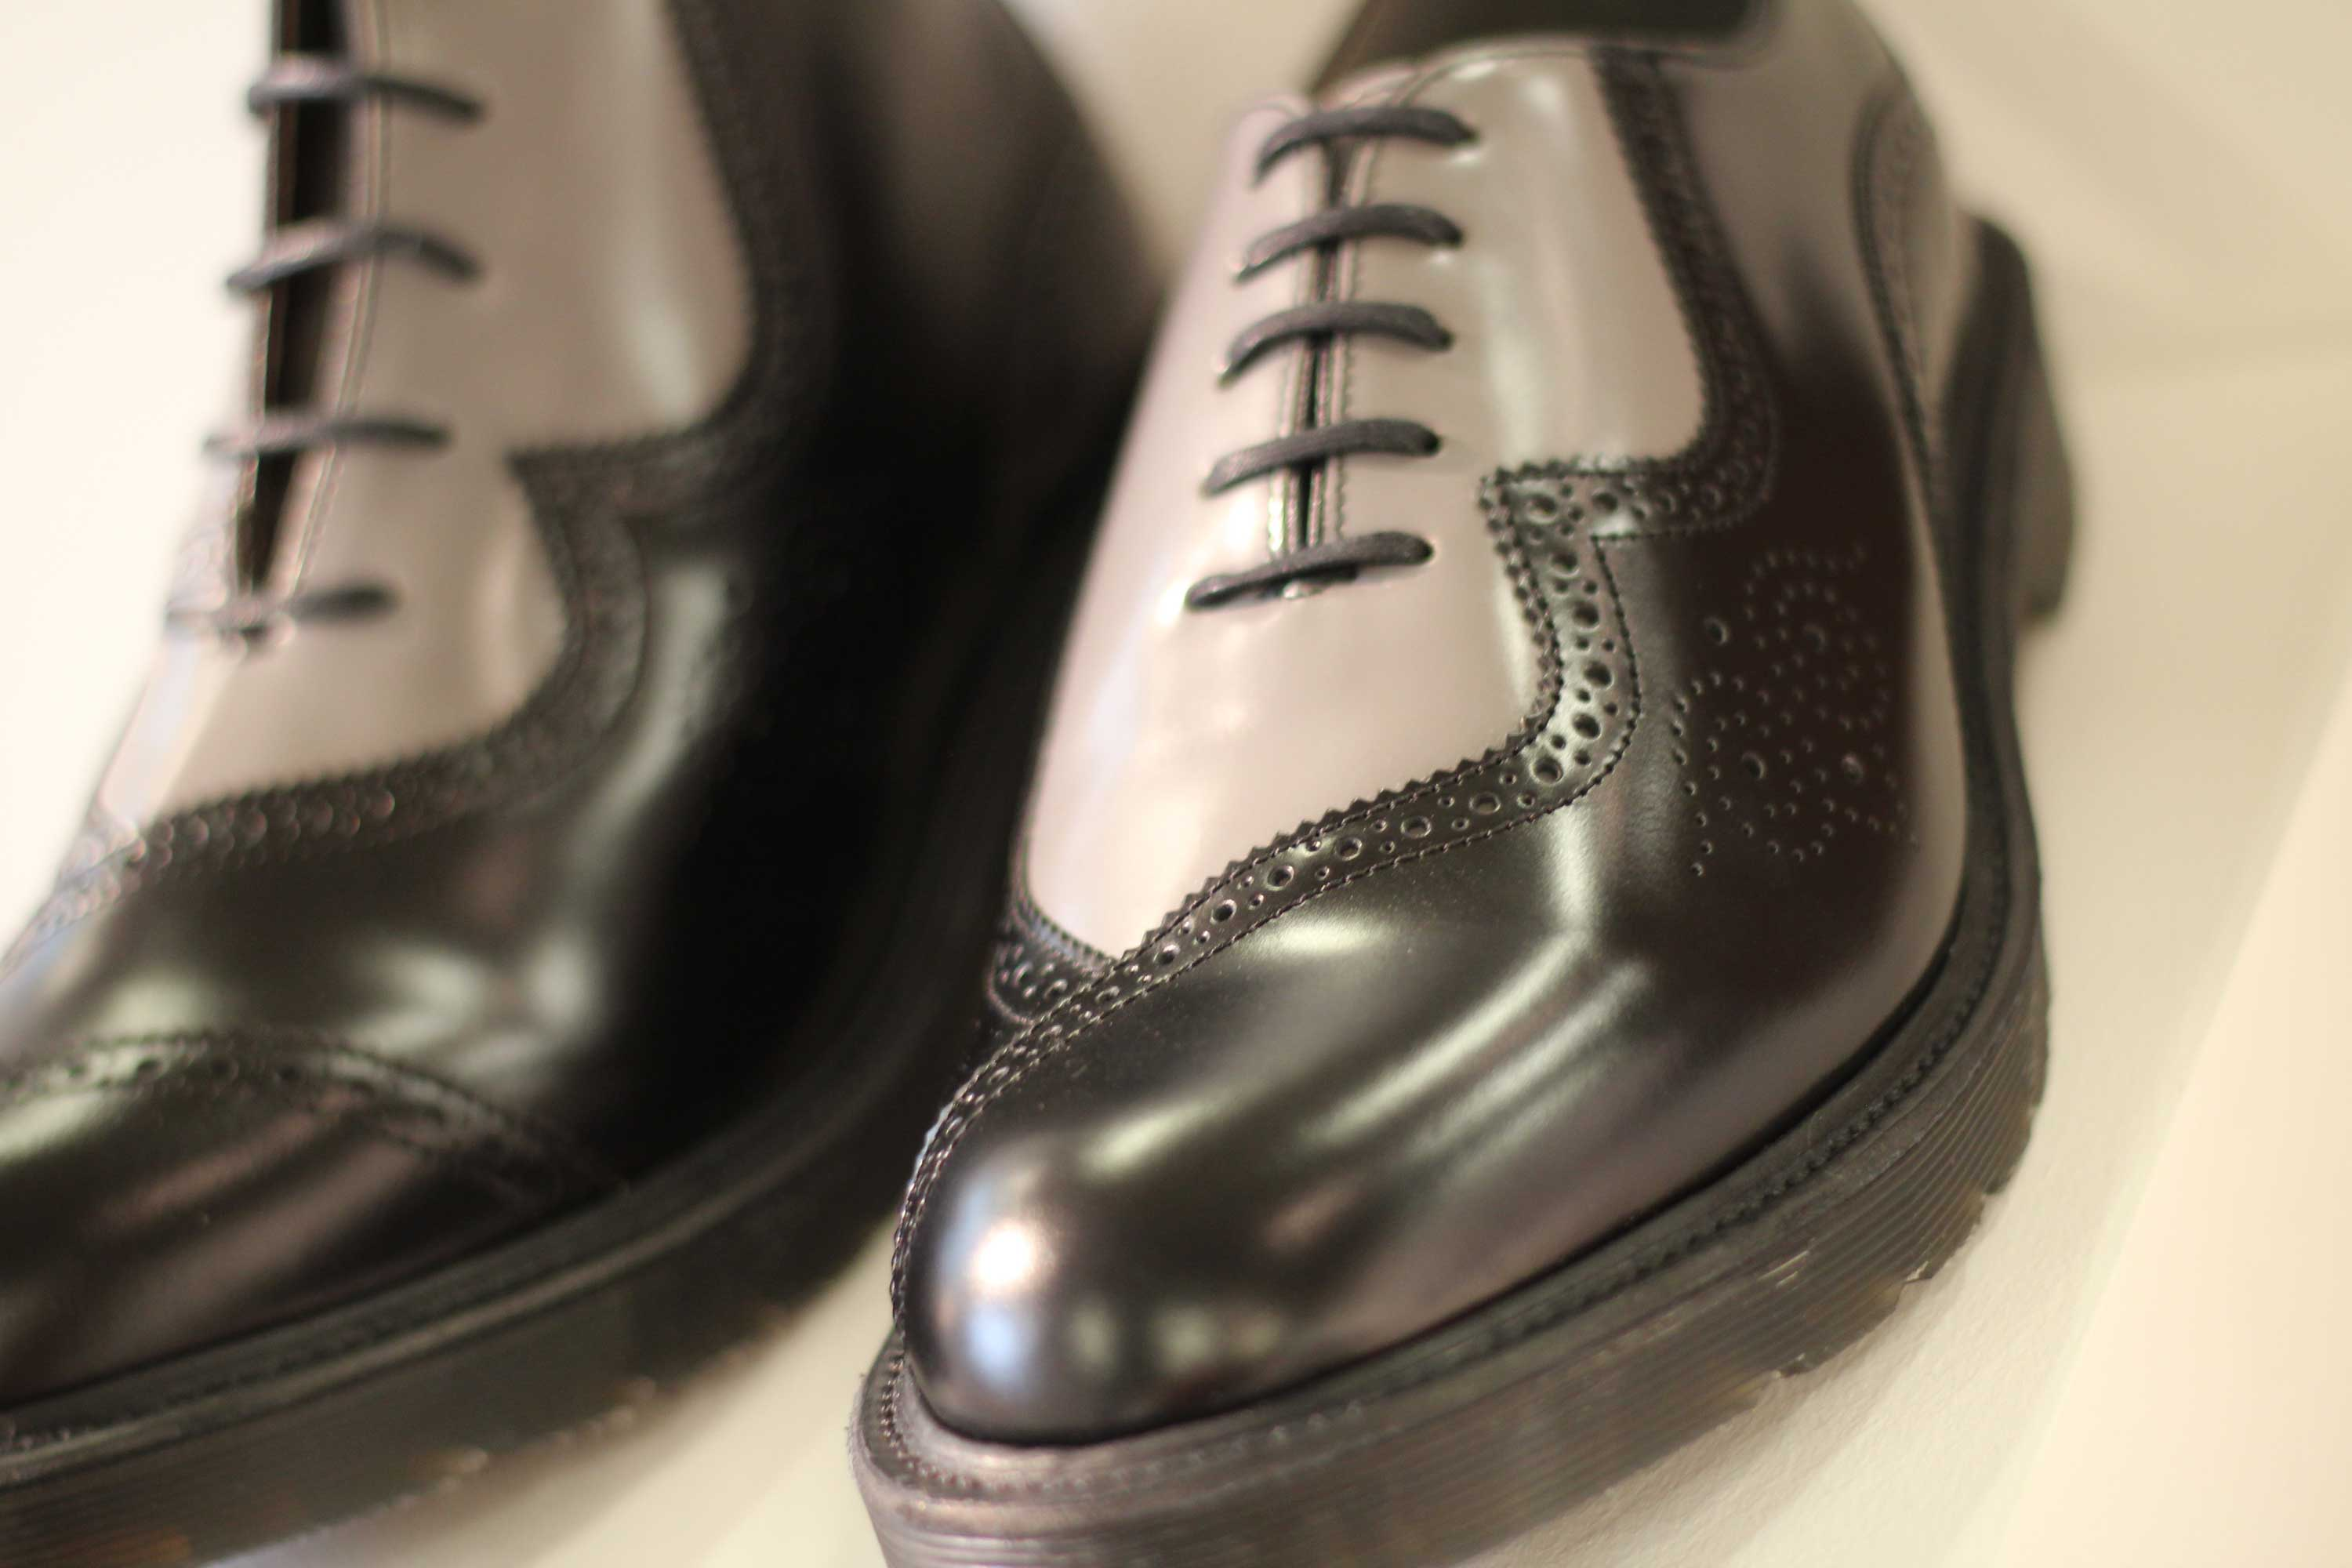 Dr-Martens-Mens-Shoes-SS14-LCM-Leather-Black-and-Grey